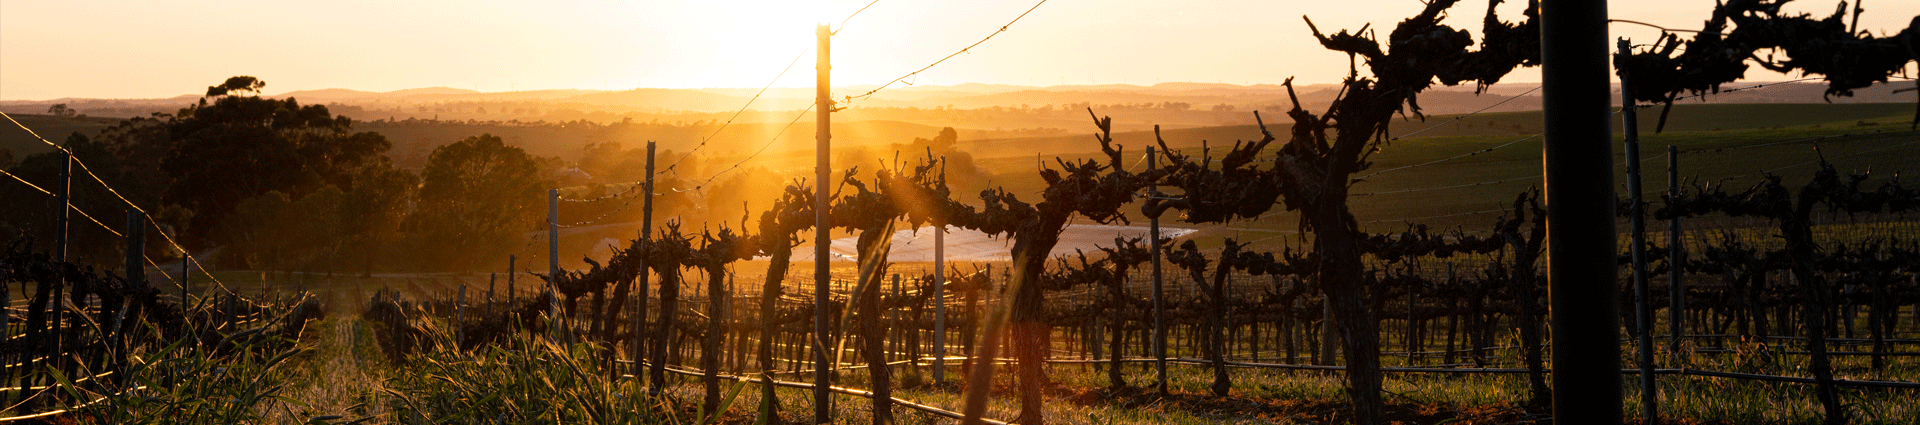 Botantic vineyard at sunrise